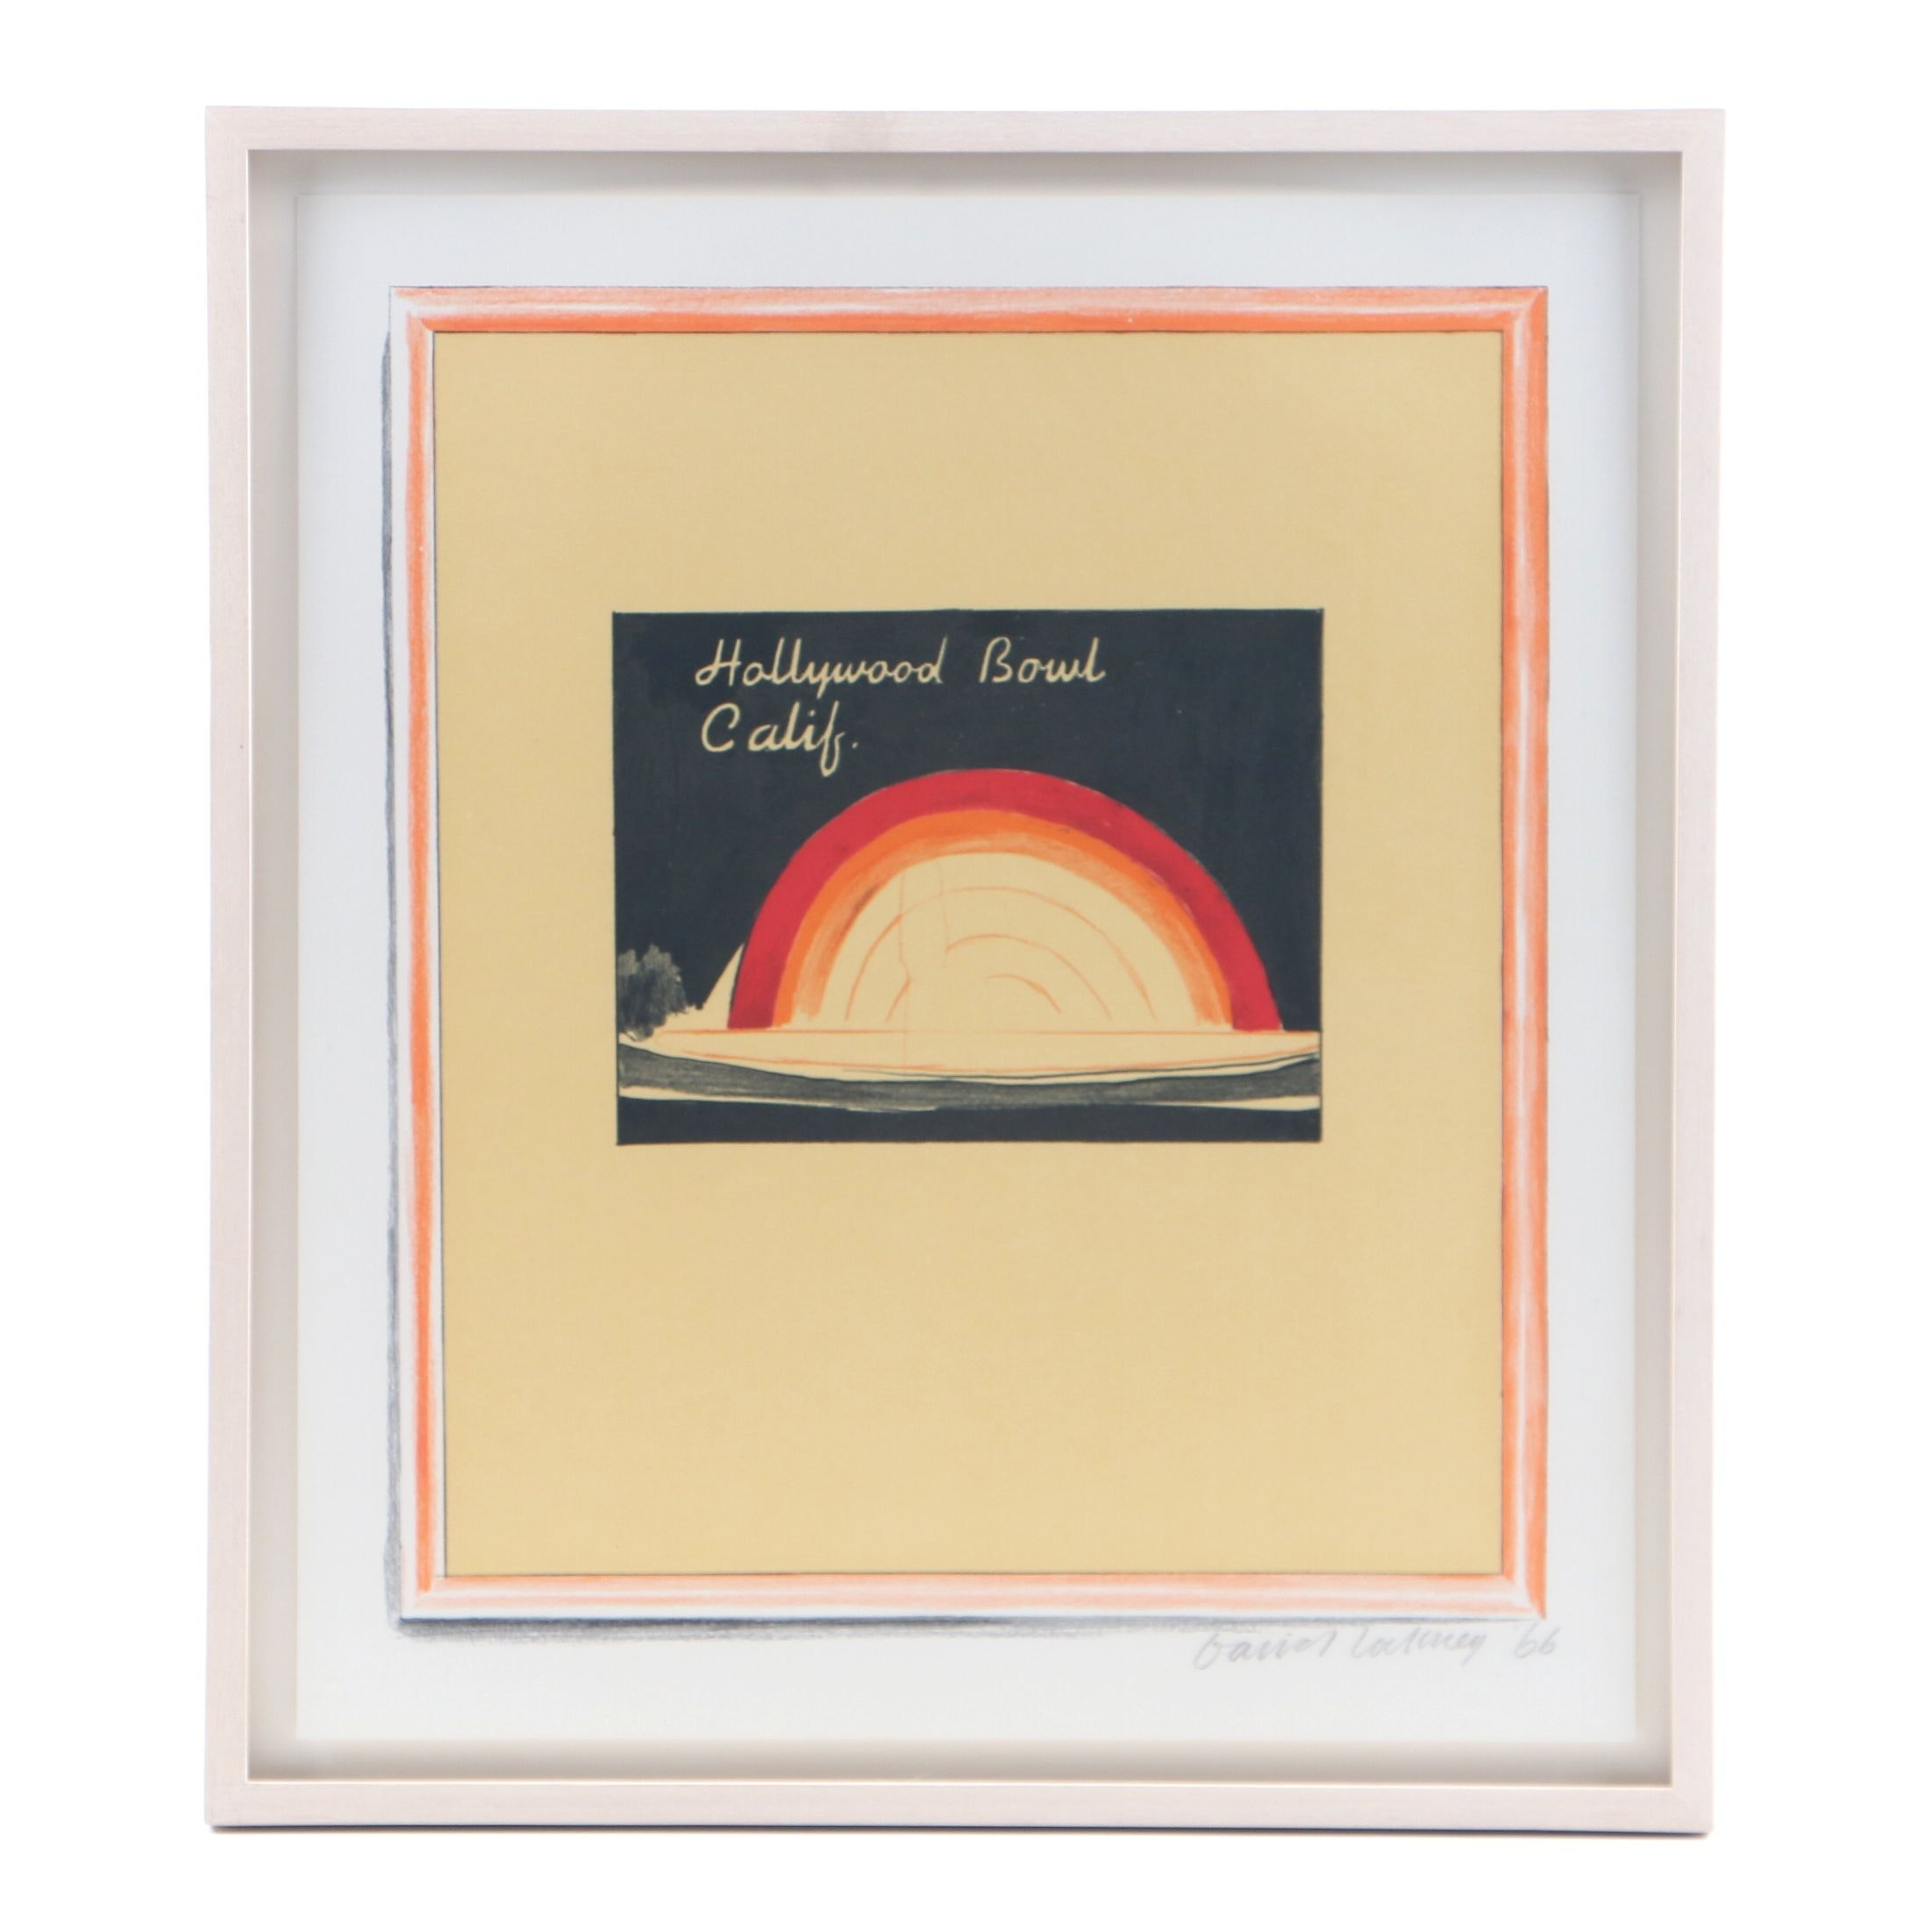 "David Hockney Serigraph on Paper  ""Hollywood Bowl Calif."""